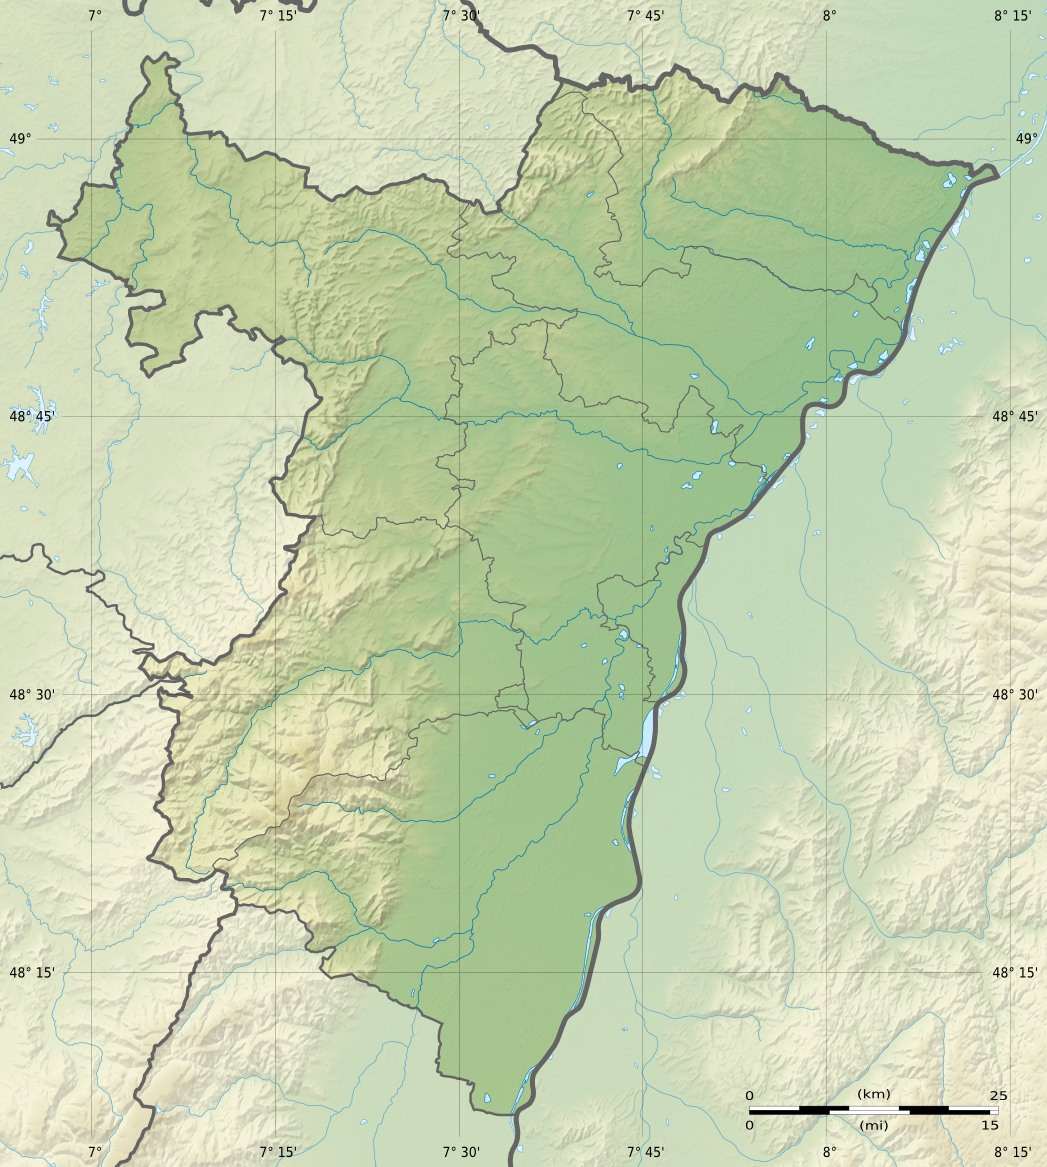 Bas Rhin Department Relief Location Map